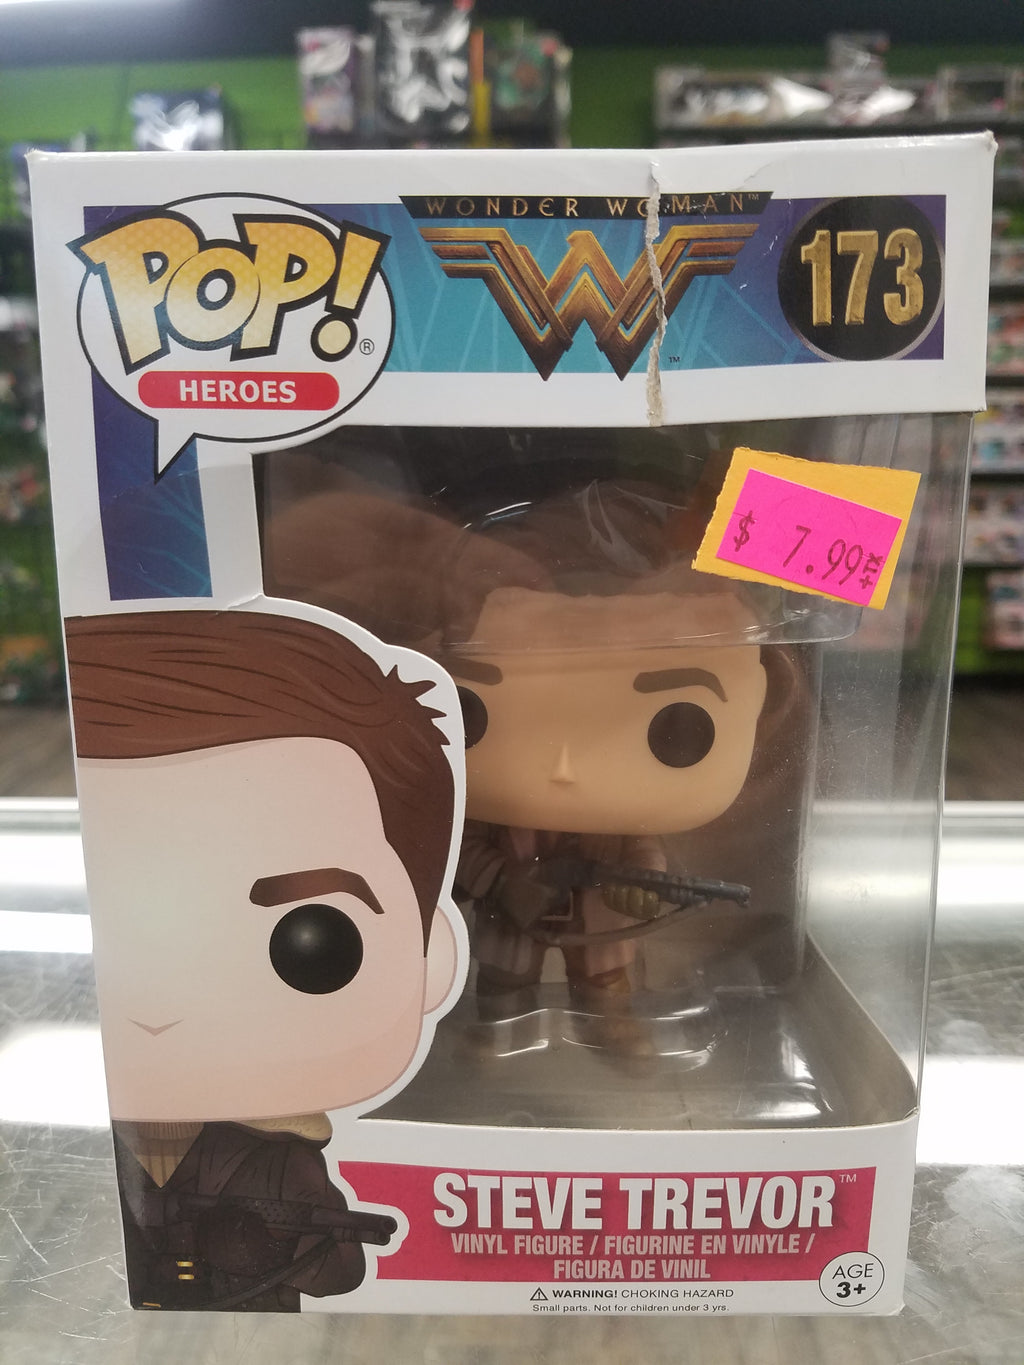 FUNKO POP! Heroes, Wonder Woman (Movie) #173, Steve Trevor